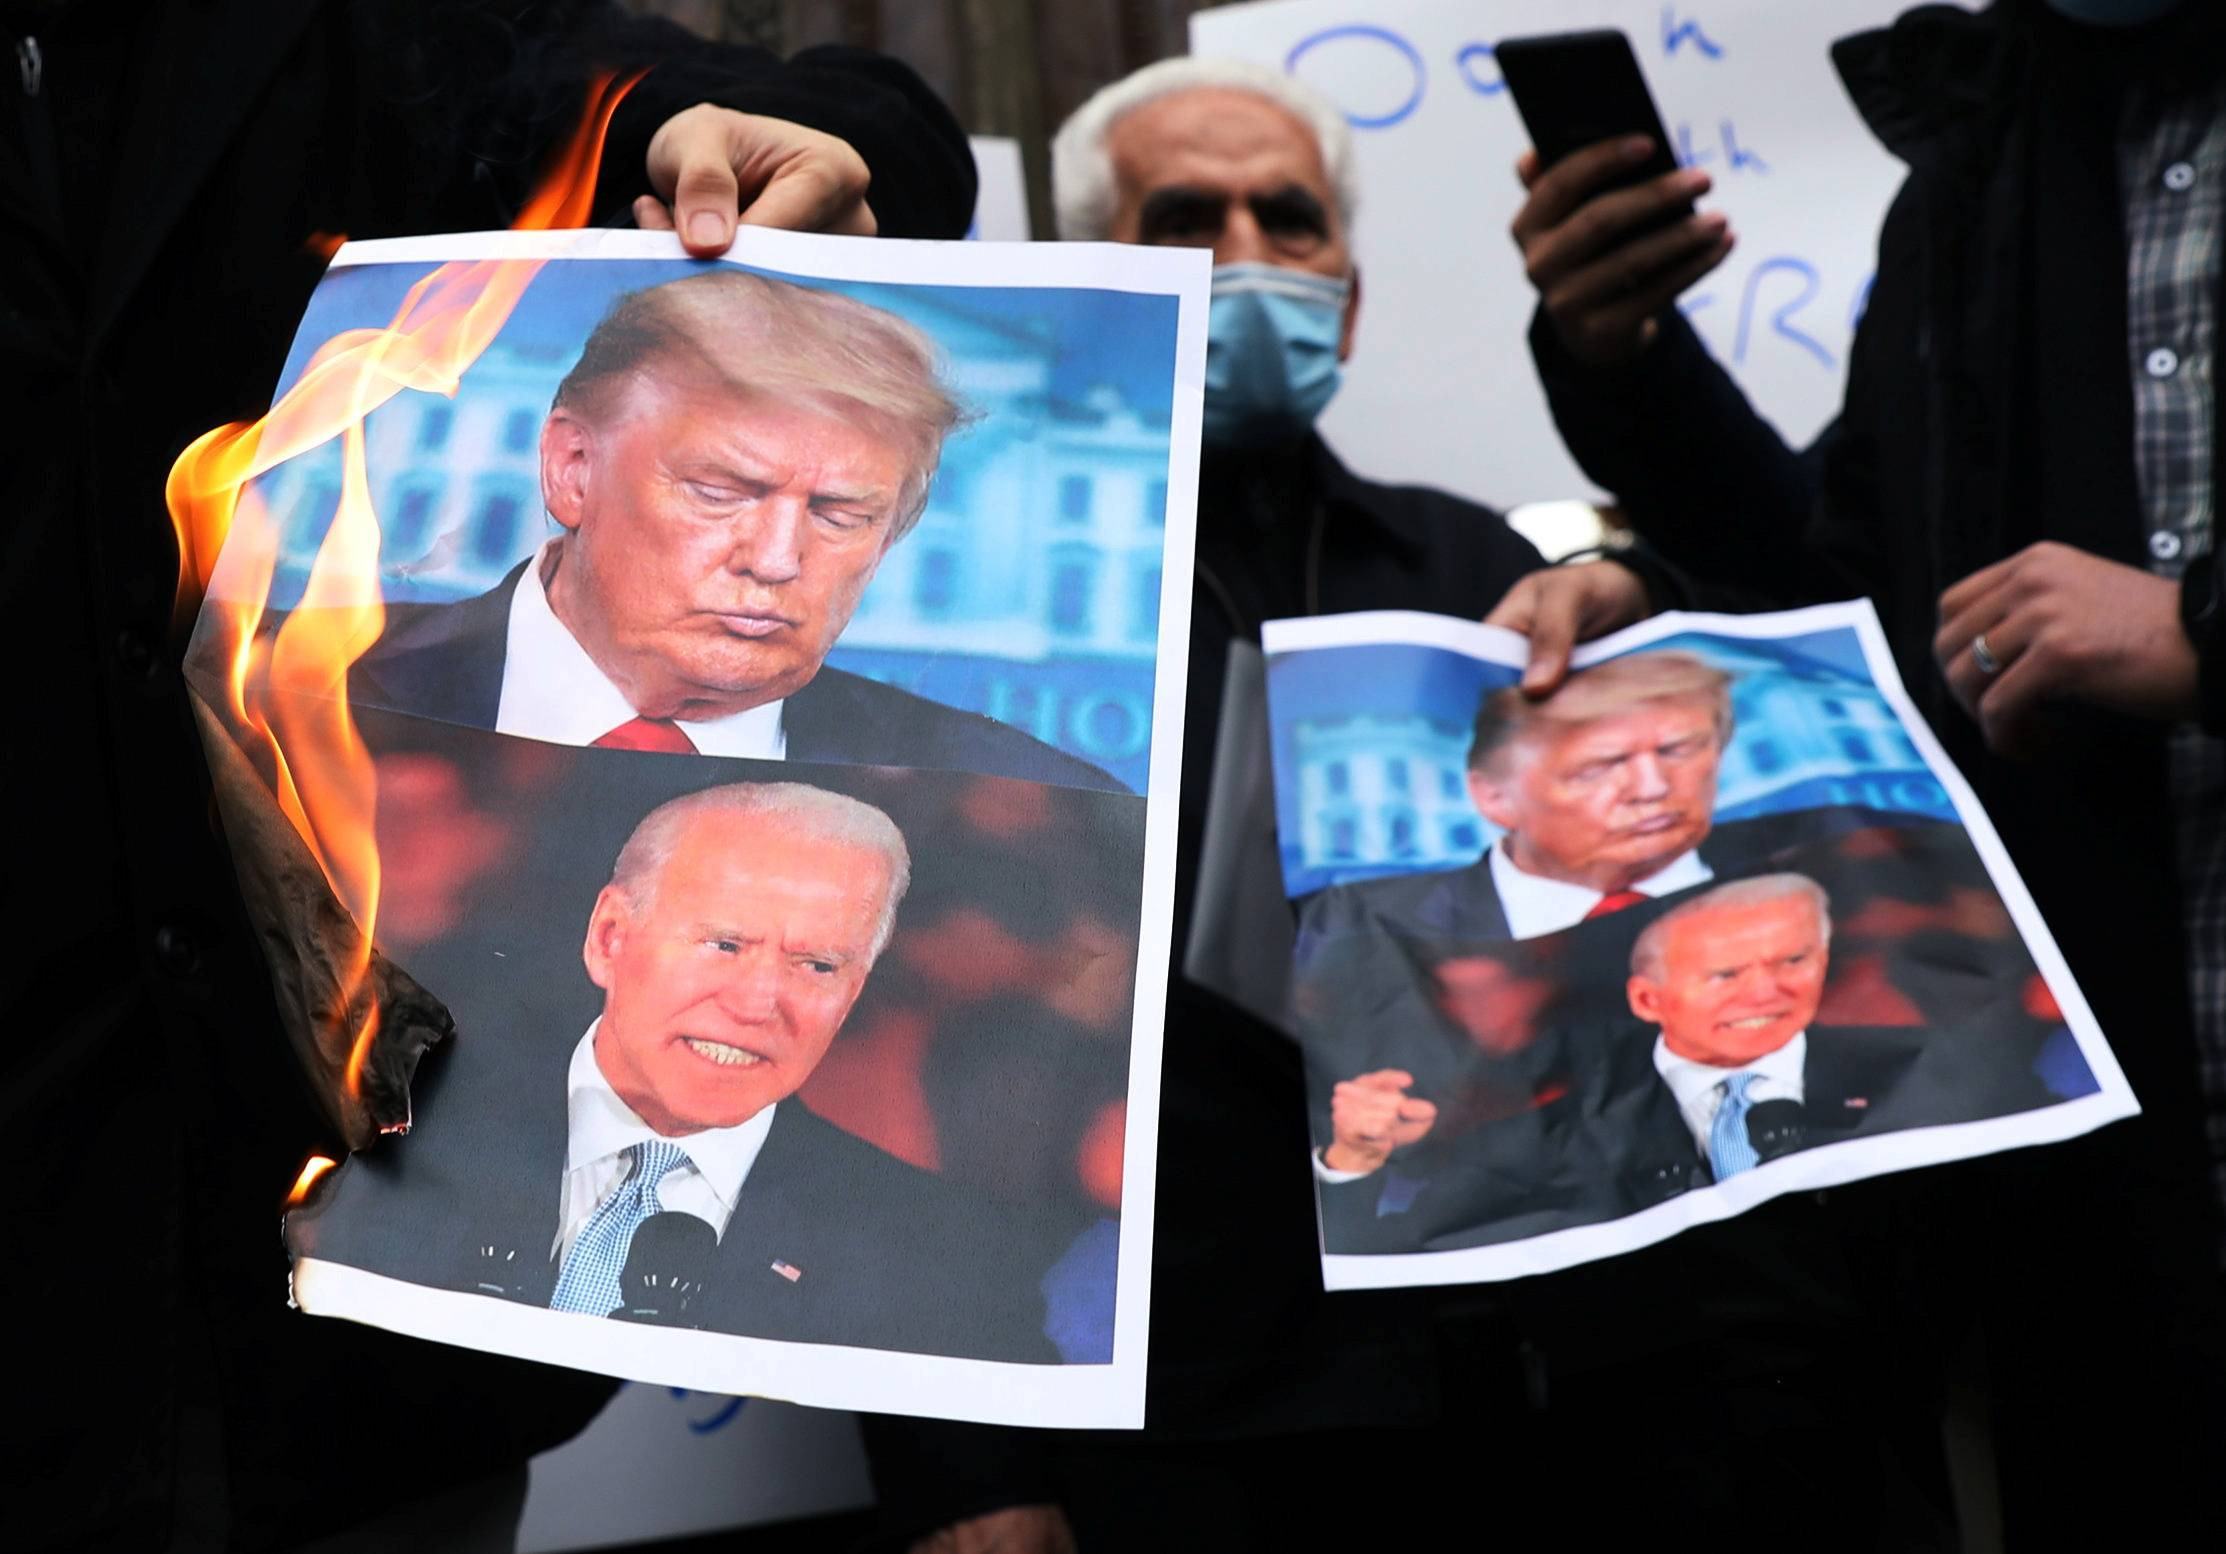 Protesters burn pictures of U.S. President-elect Joe Biden and U.S. President Donald Trump during a demonstration against the killing of Mohsen Fakhrizadeh, Iran's top nuclear scientist, in Tehran on Saturday.  | WEST ASIA NEWS AGENCY / VIA REUTERS